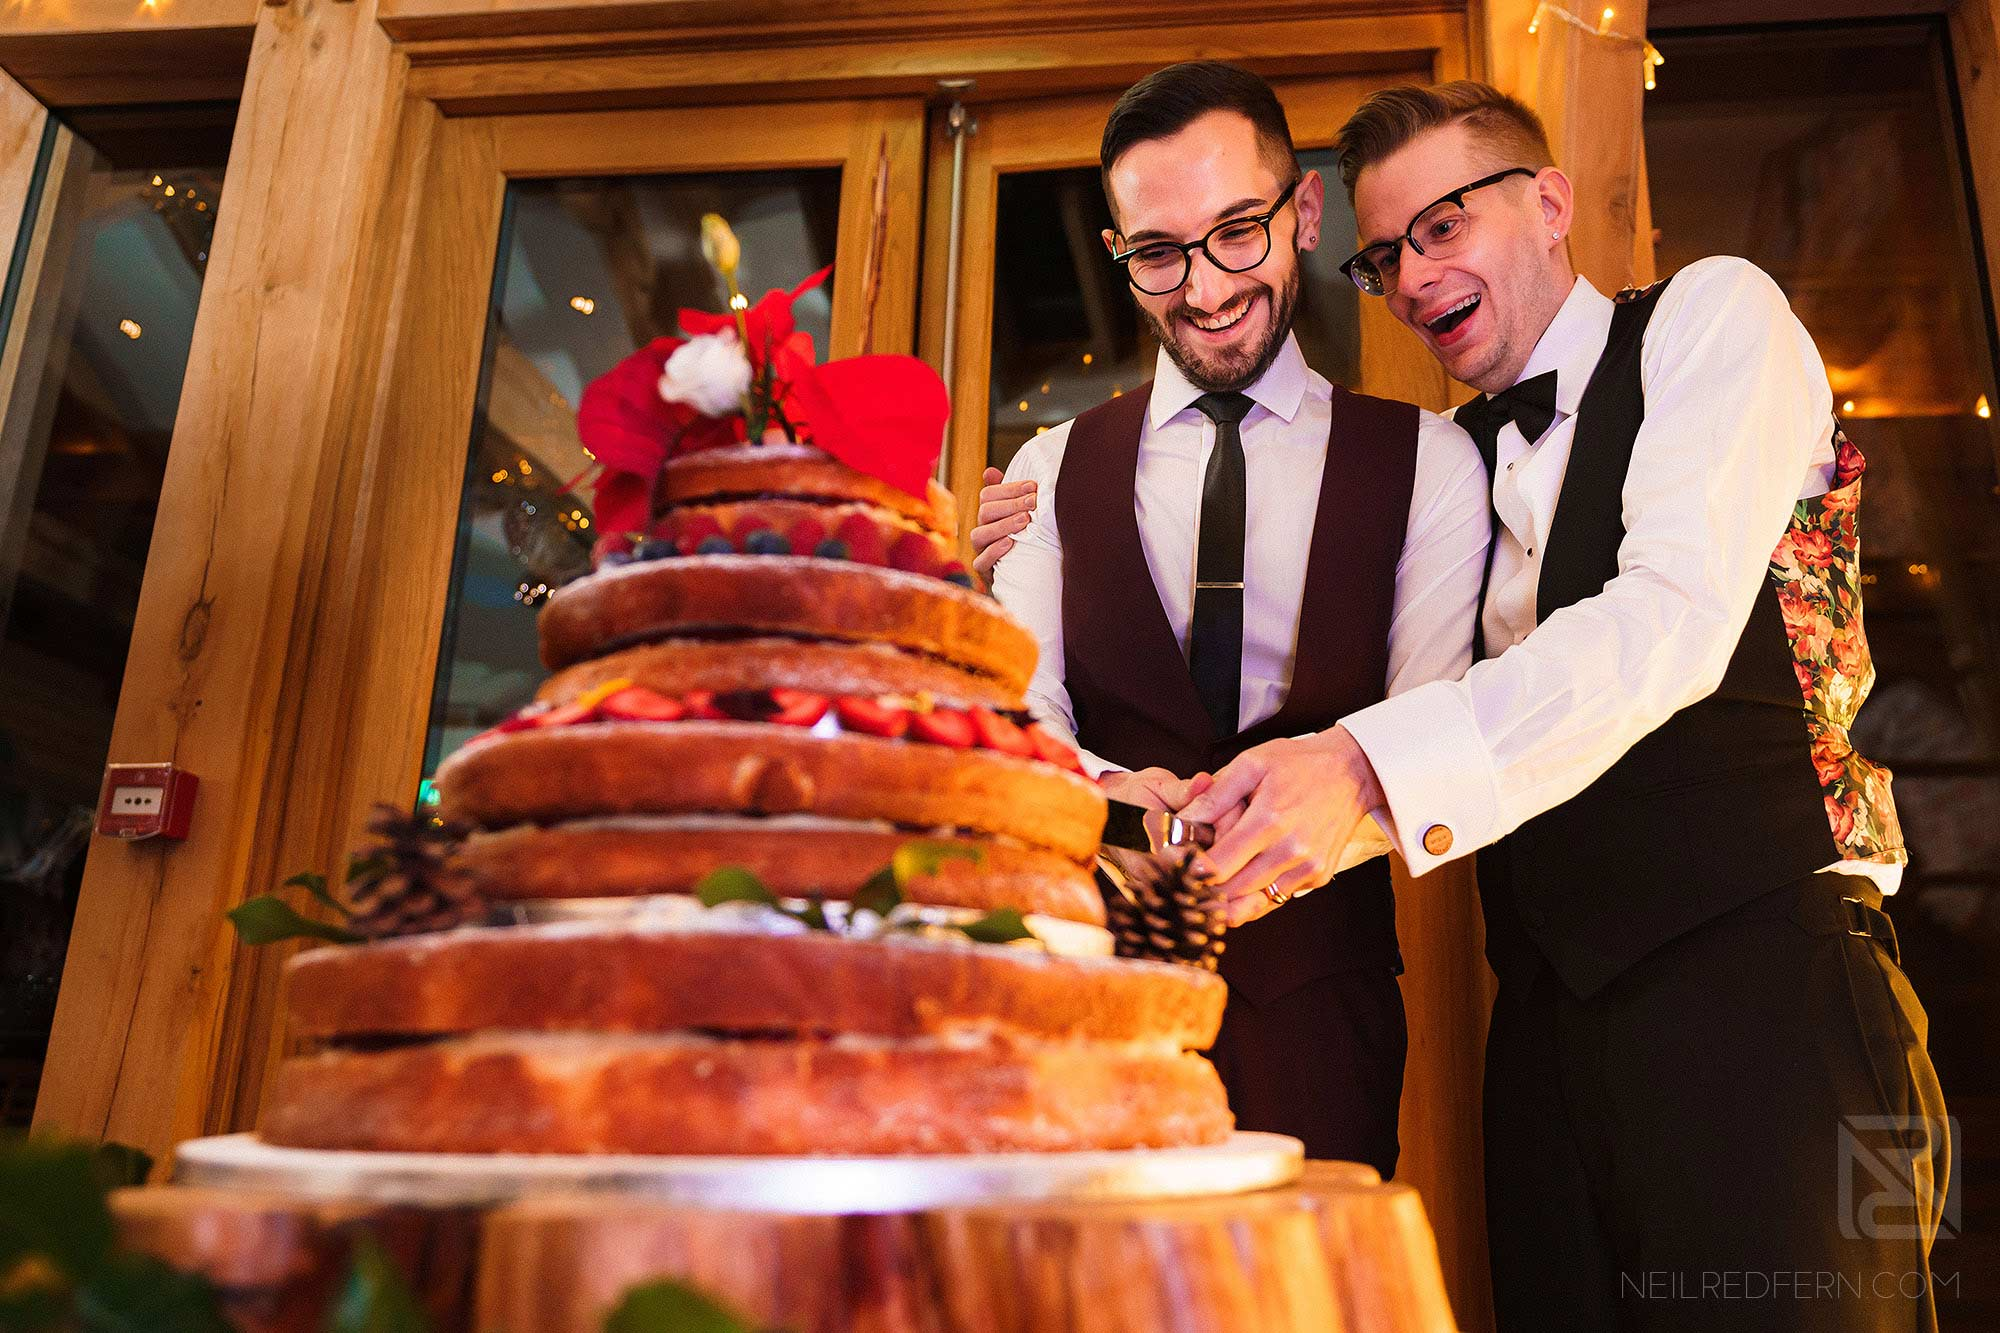 two grooms cutting wedding cake